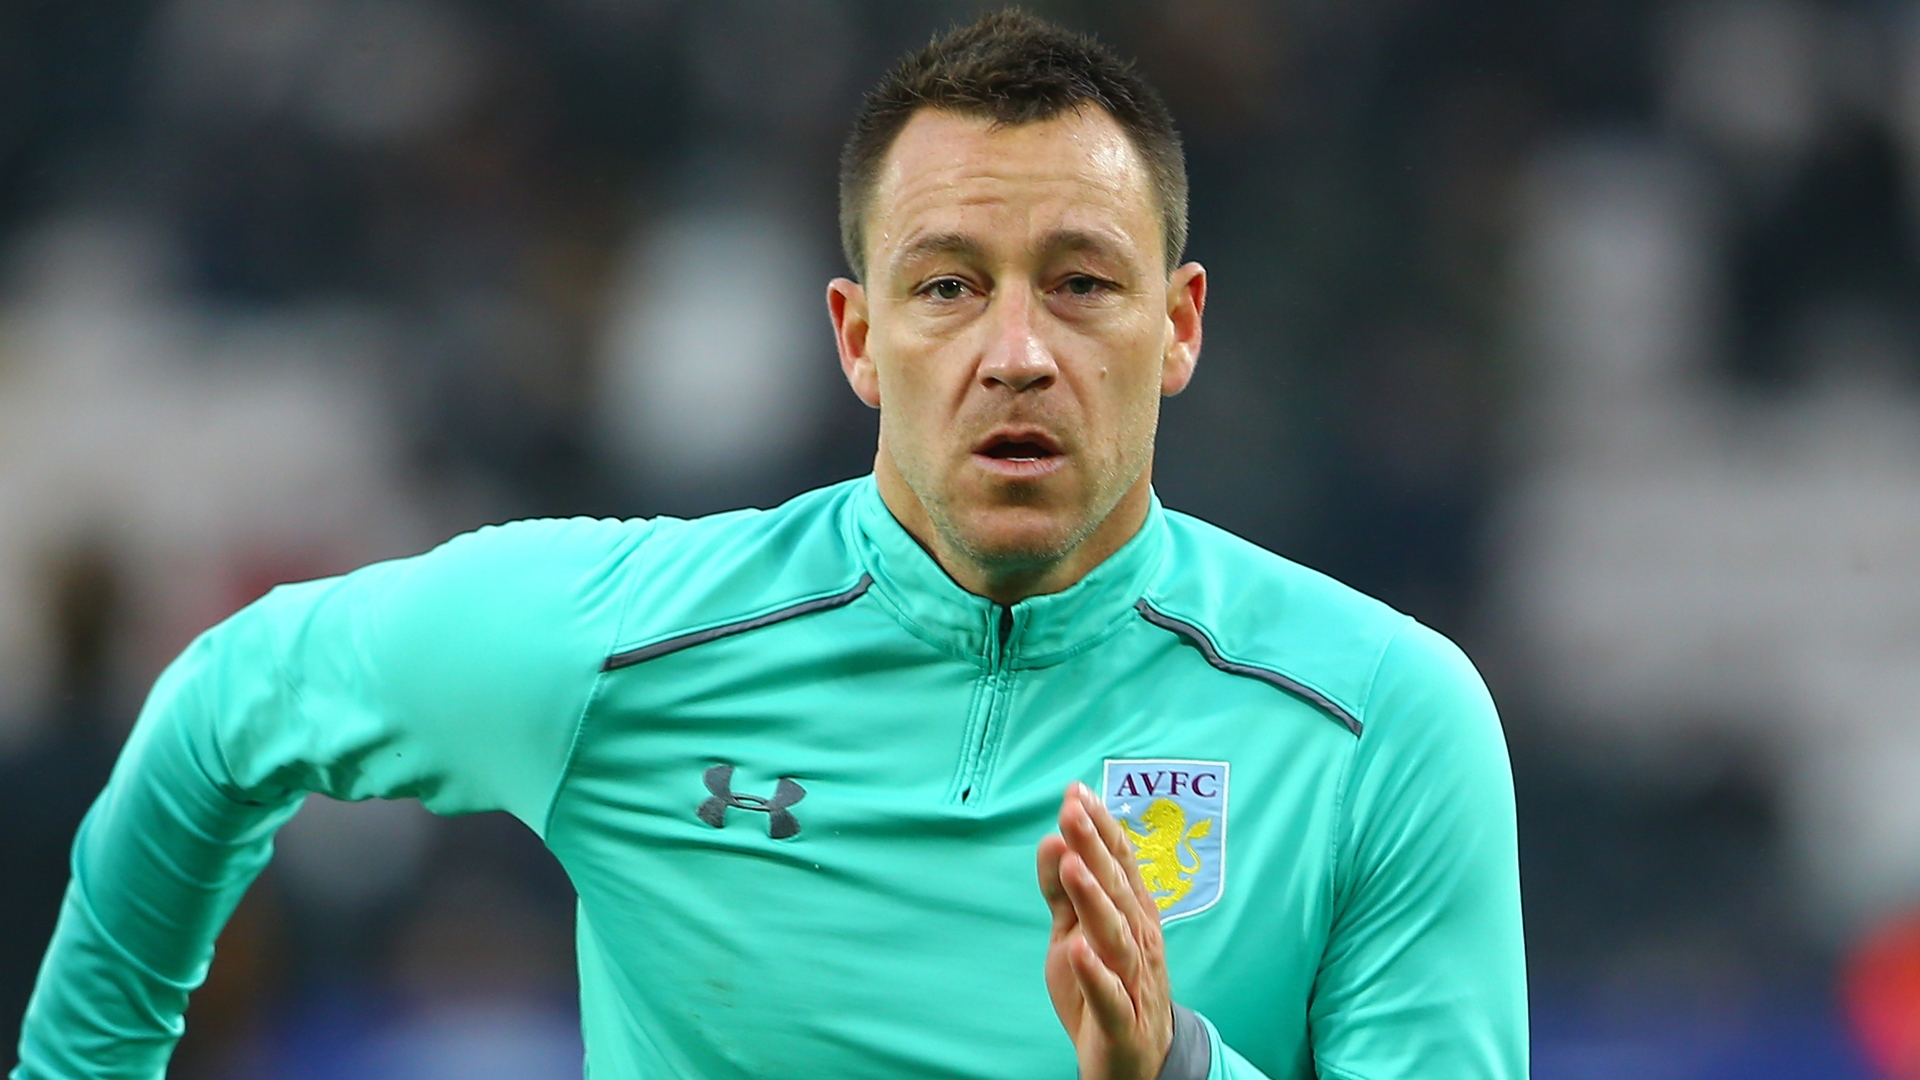 Sarri open to bringing Terry 'home to help us'